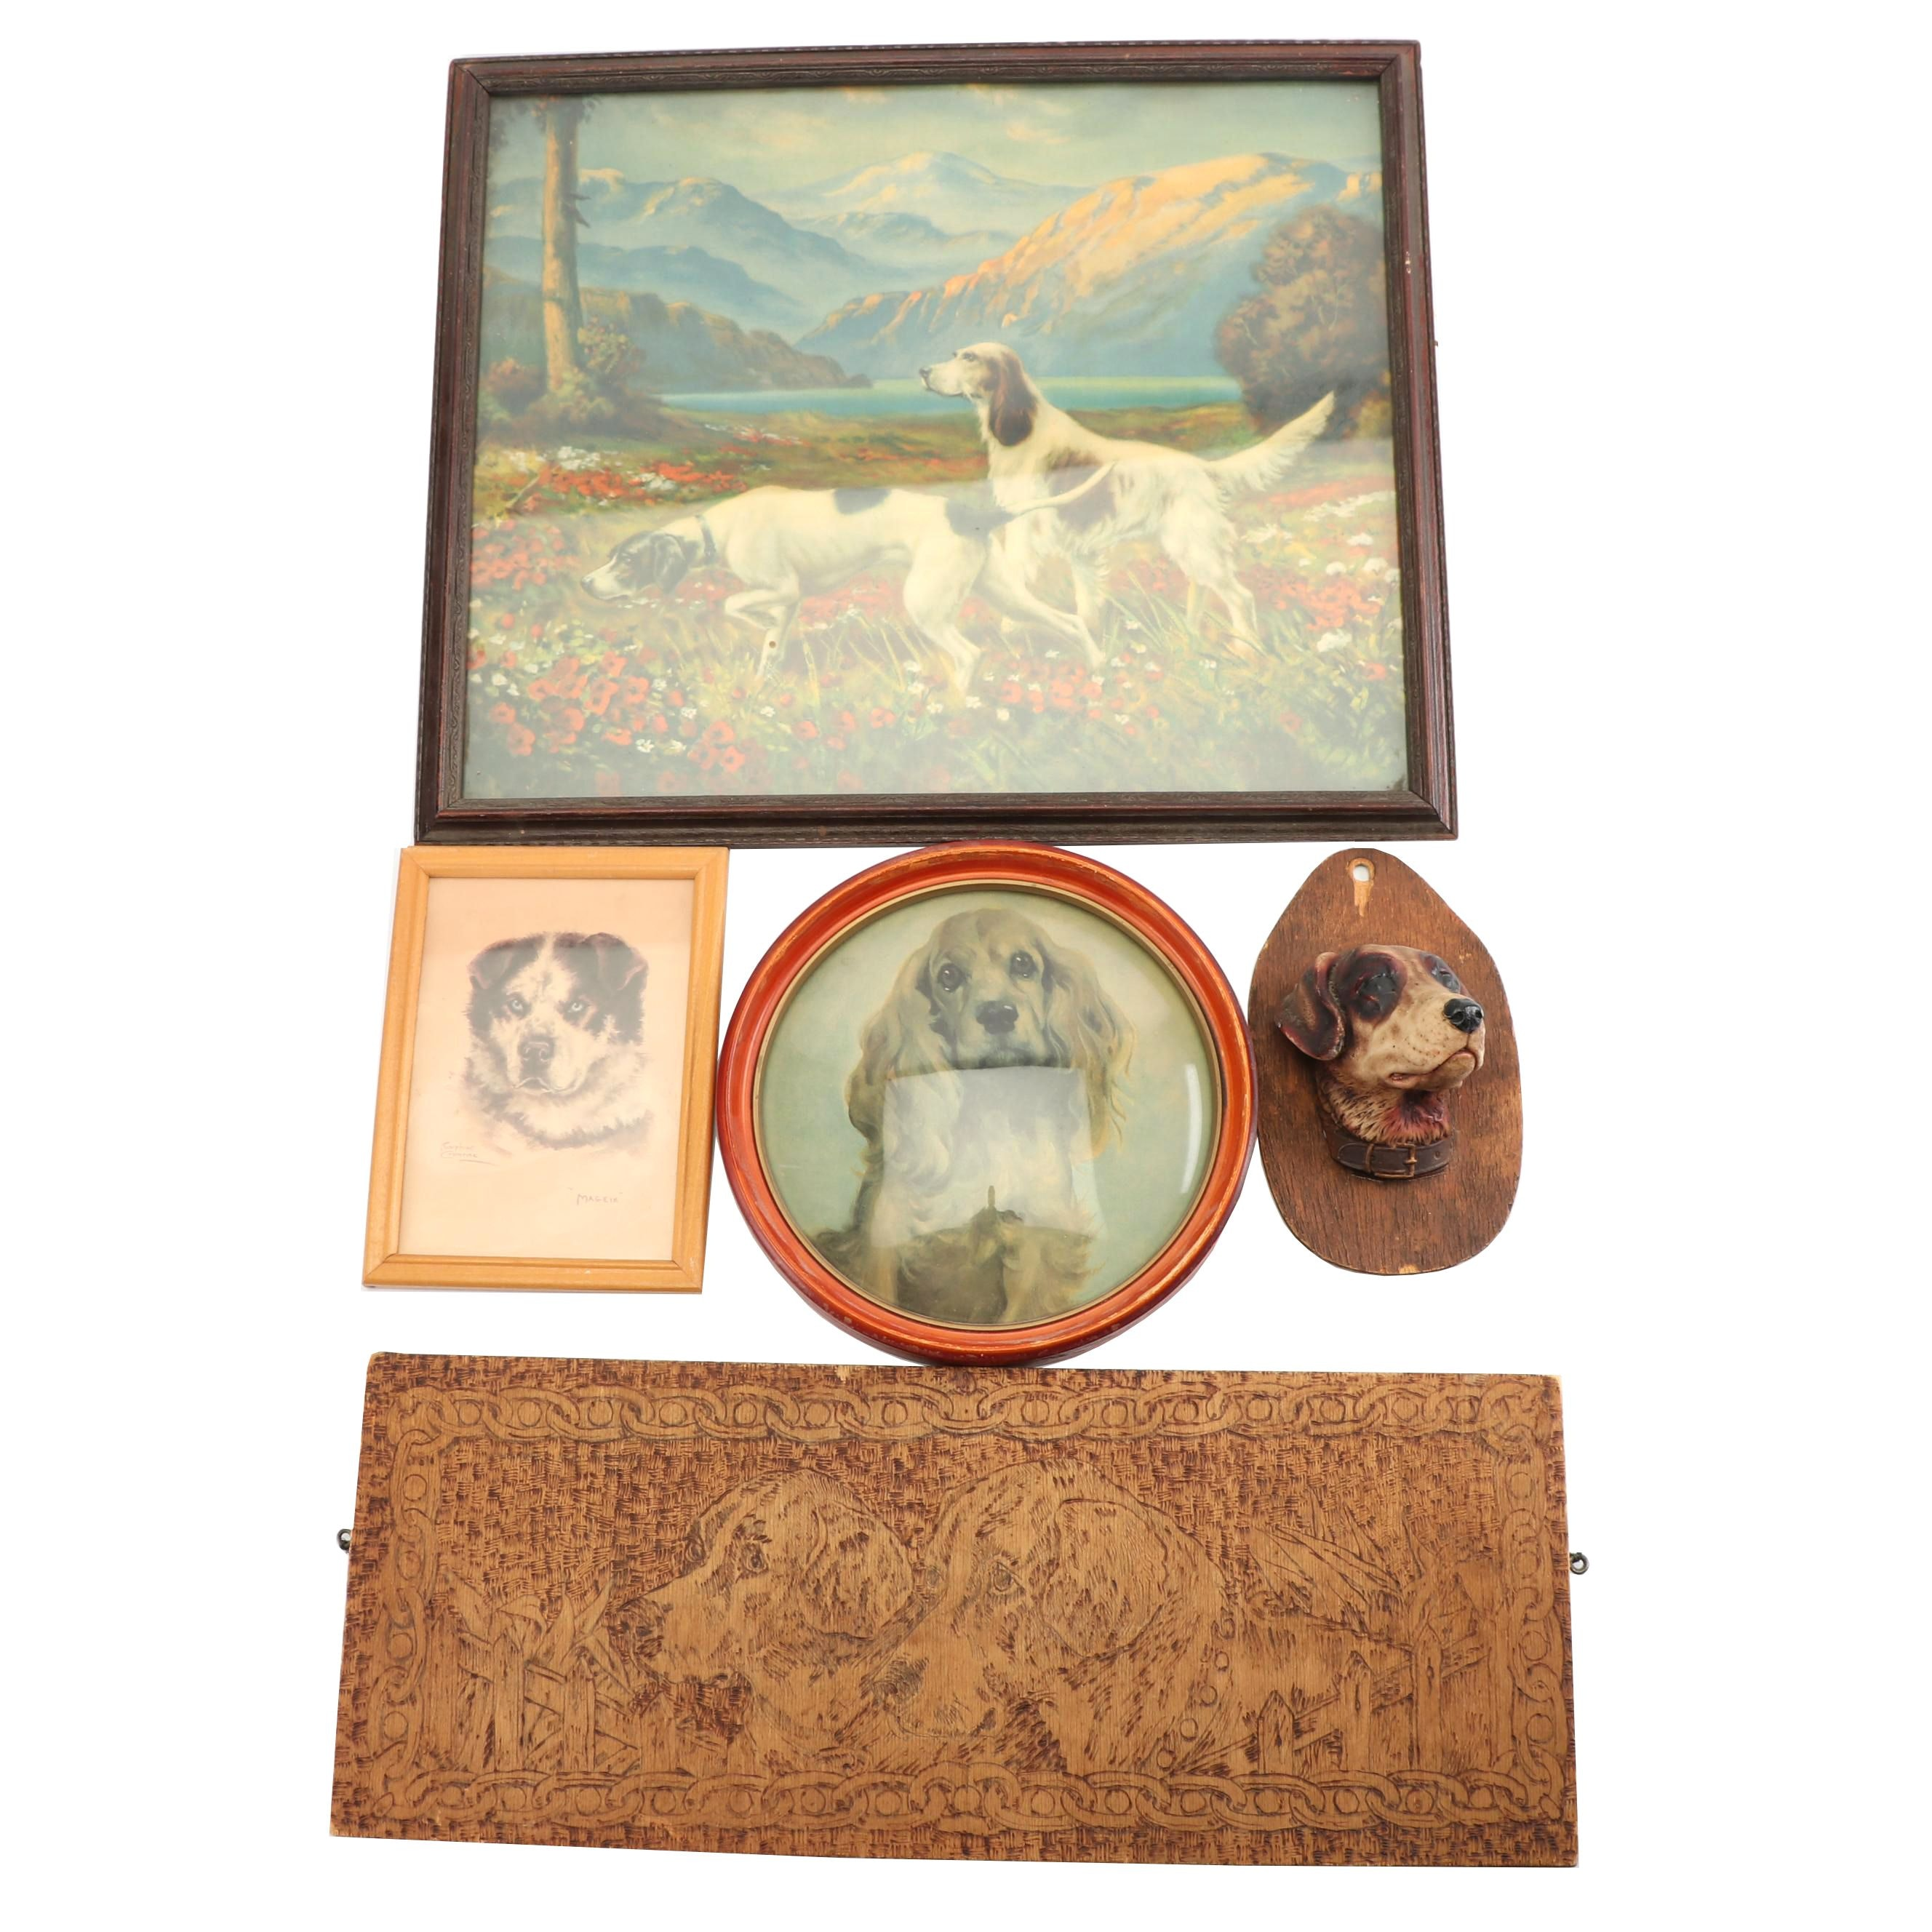 Flemish Art Company Pyrographic Wall Hanging with Offset Lithographs and More